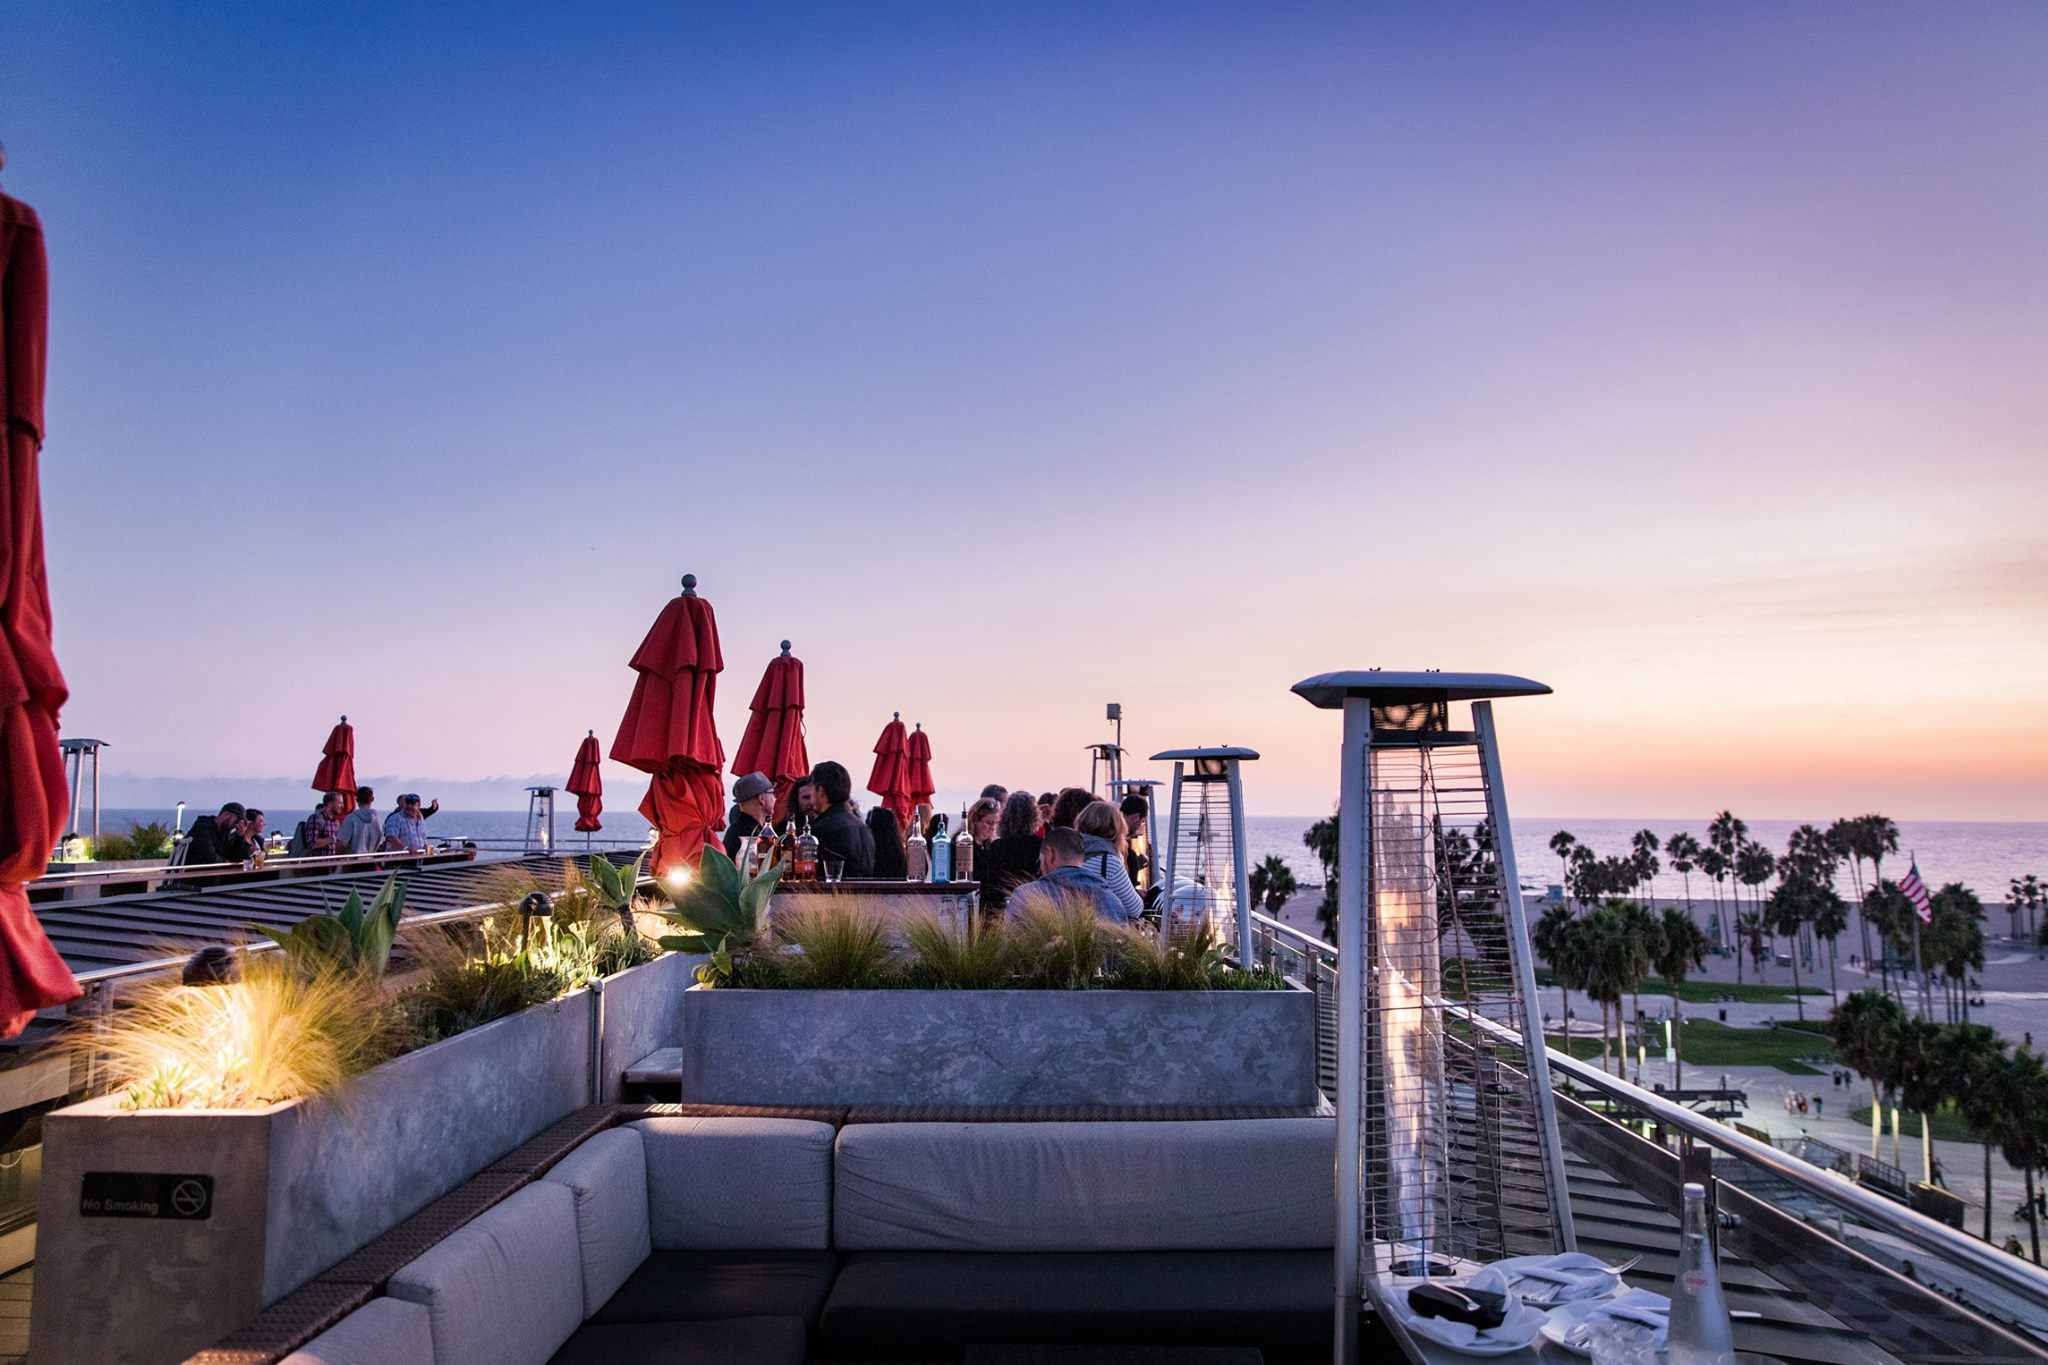 The rooftop bar at the Hotel Erwin